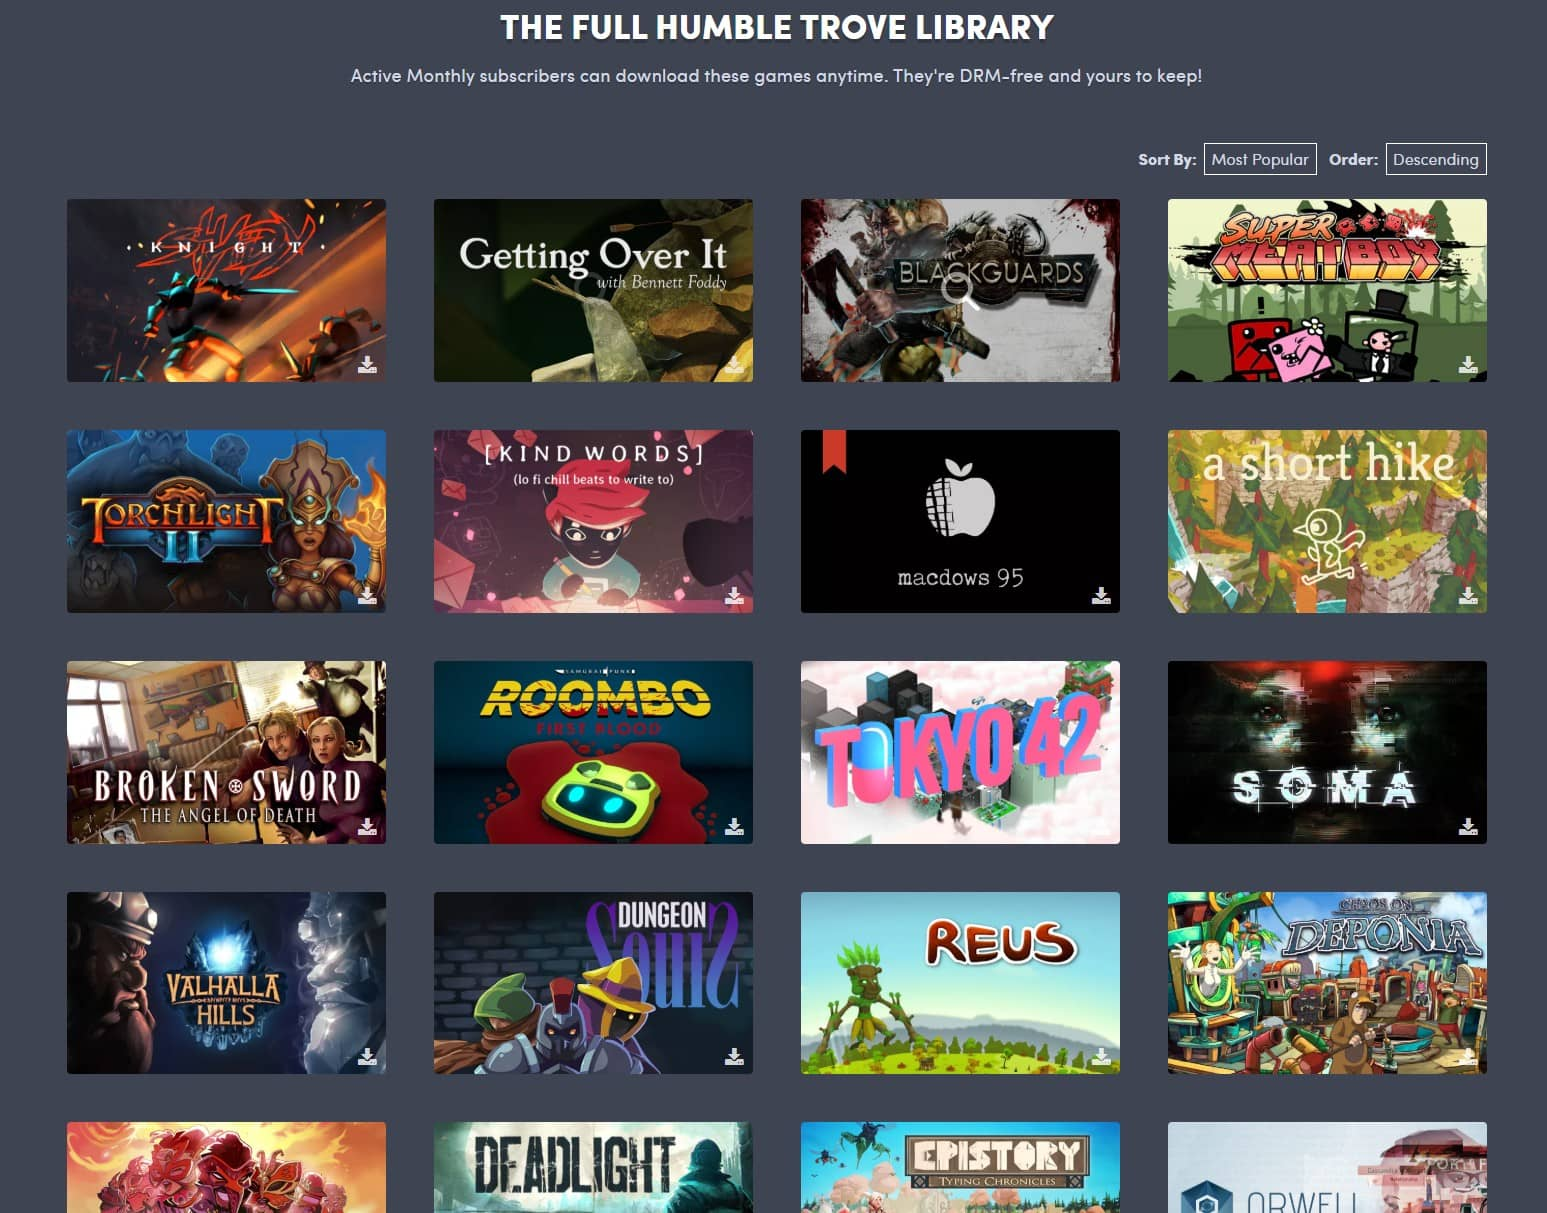 Hry v DRM-free knihovně Humble Trove